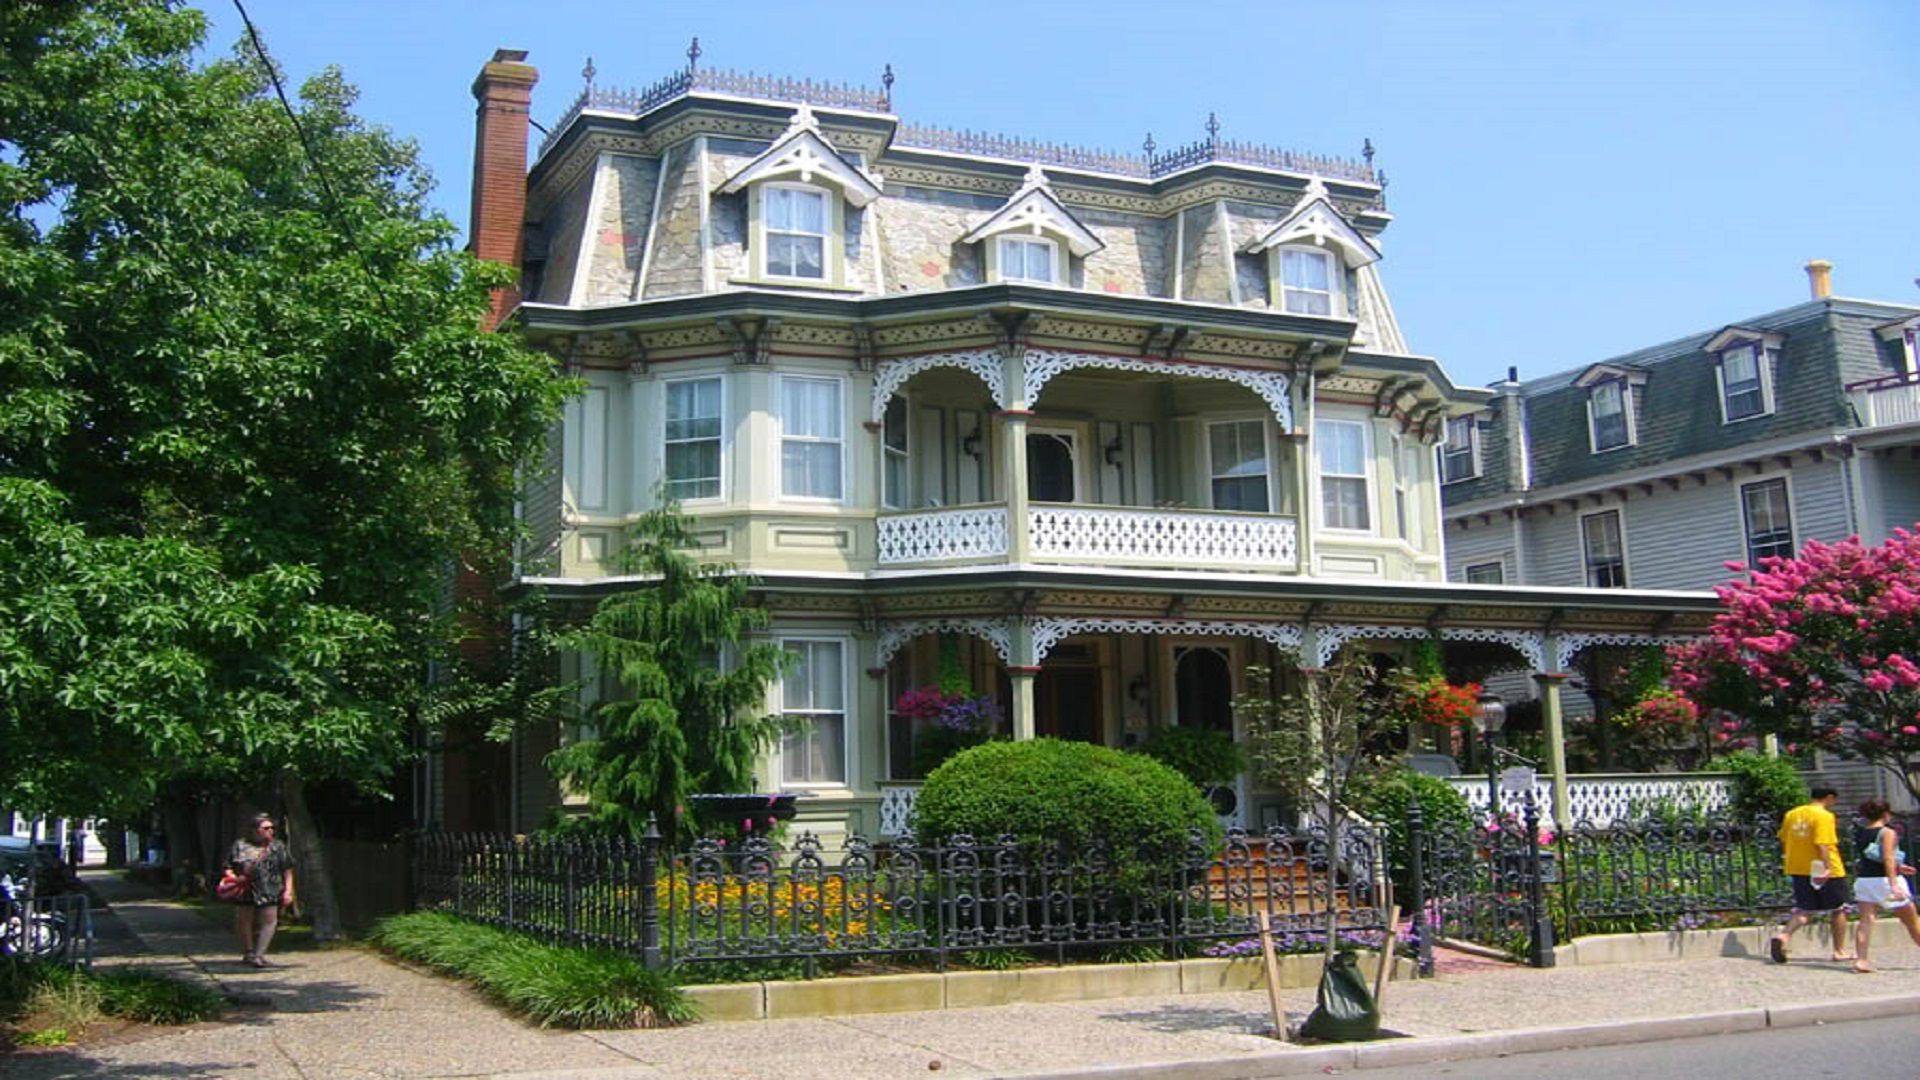 Pin by Cape May Vacation Rentals on Cape May Vacation